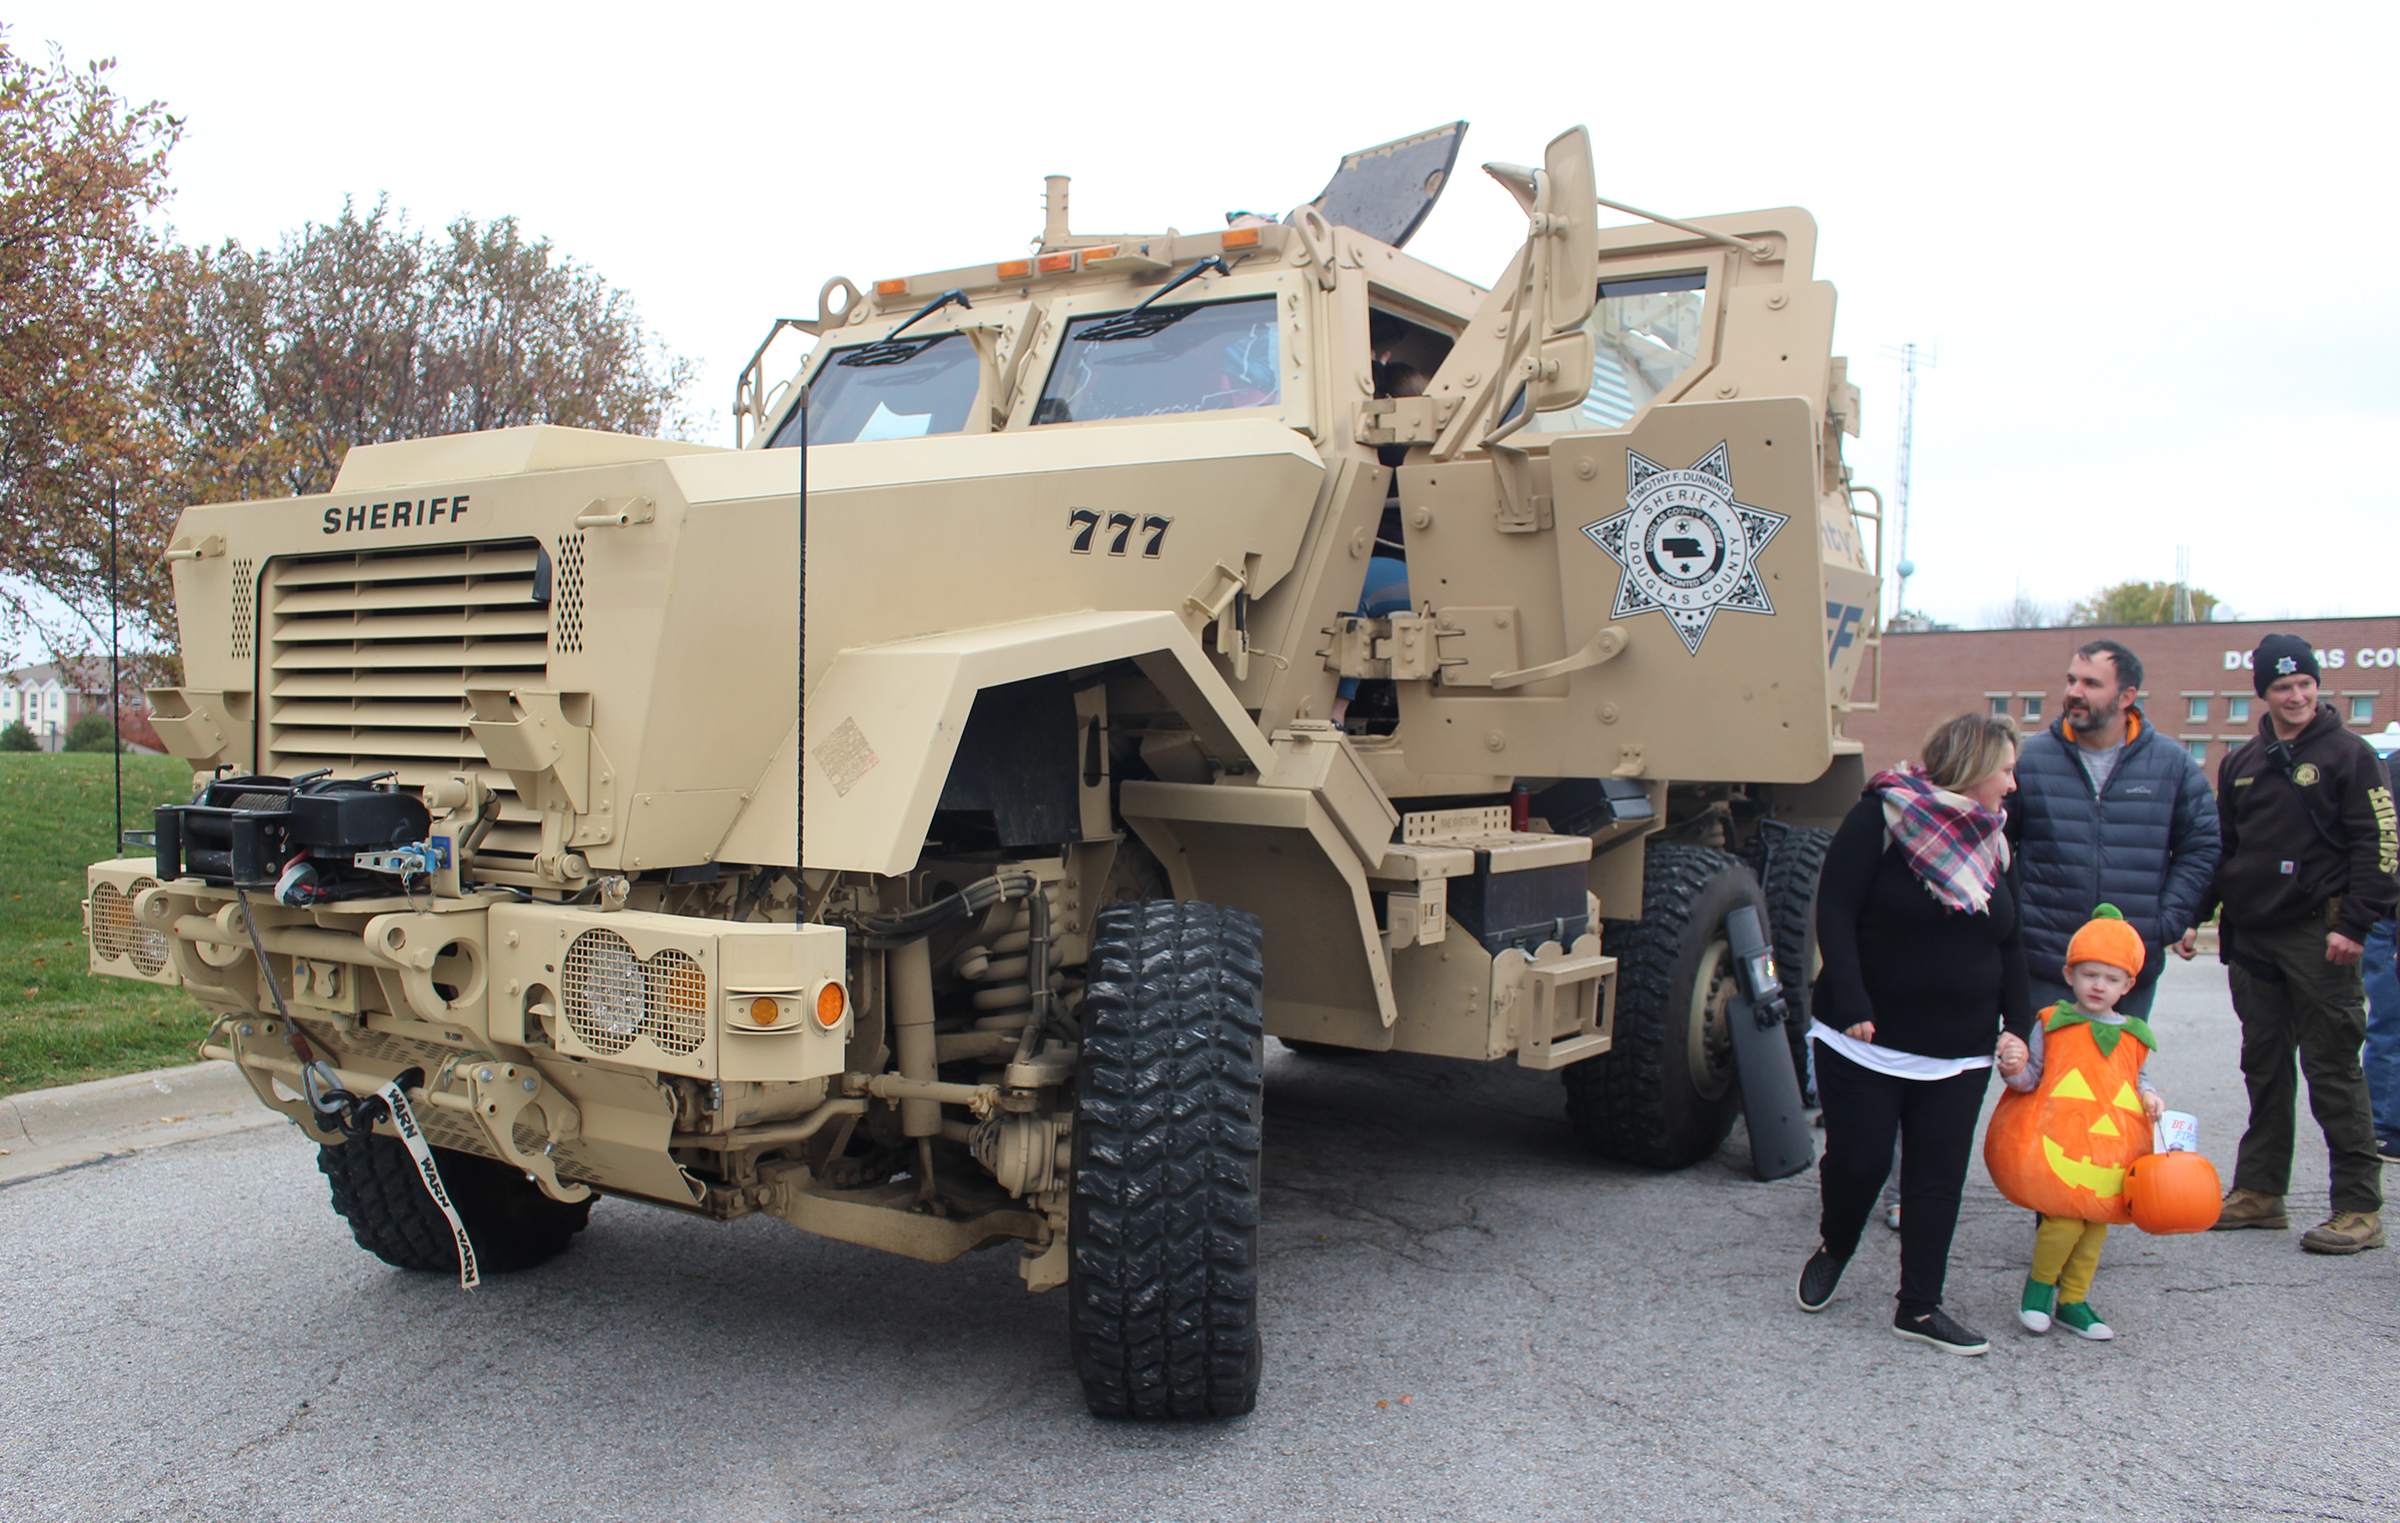 An MRAP, a mine-resistant, ambush-protected military tactical vehicle used by the Douglas County Sheriff's Office, was among the vehicles on display at an open house on Saturday, Oct. 27, 2019. (Photo by Scott Stewart)